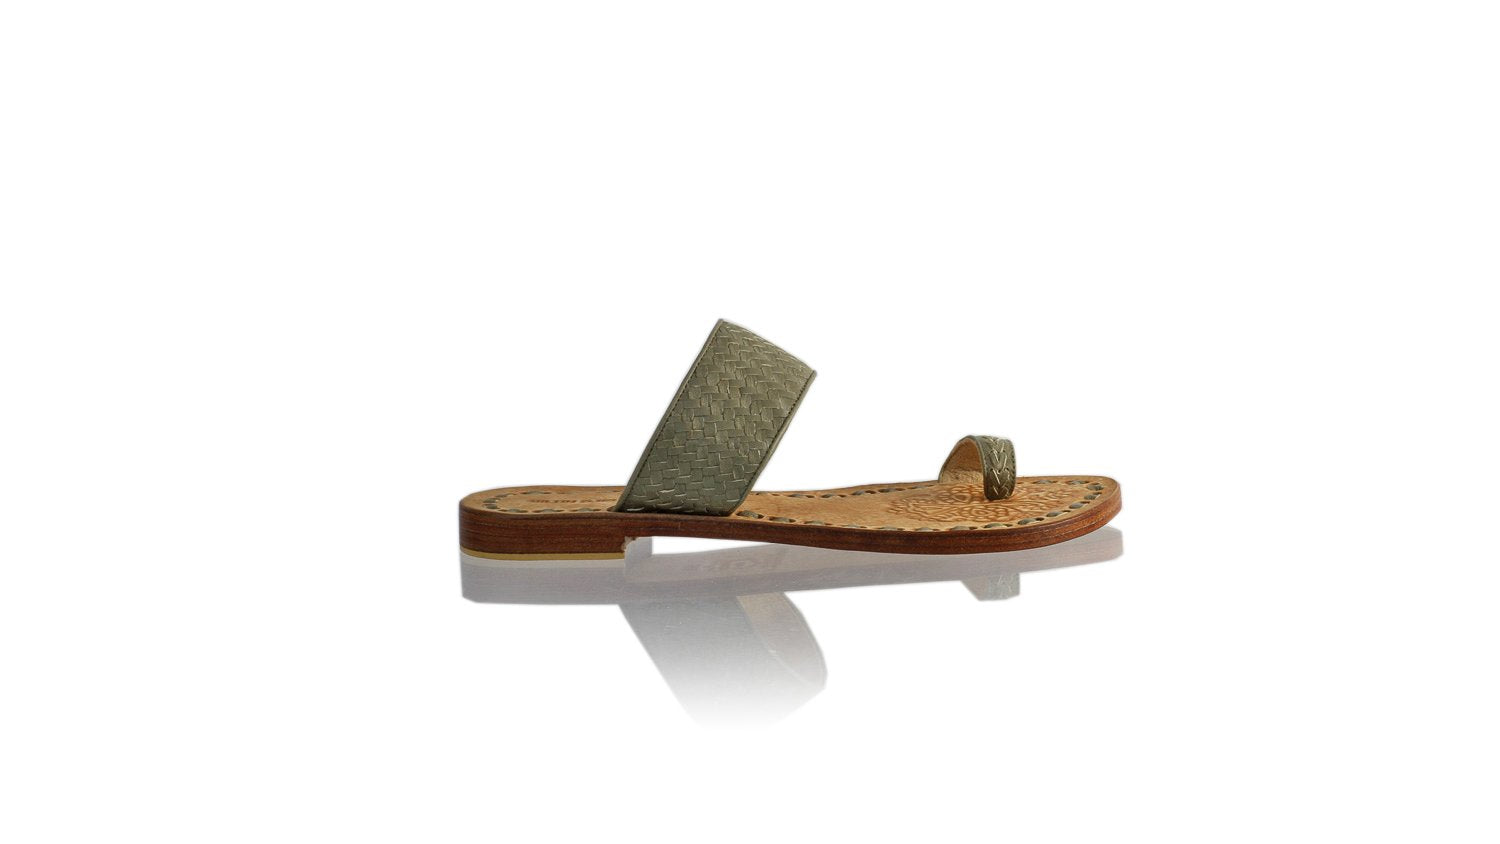 Leather-shoes-Arini 20mm Flat - Grey-sandals flat-NILUH DJELANTIK-NILUH DJELANTIK